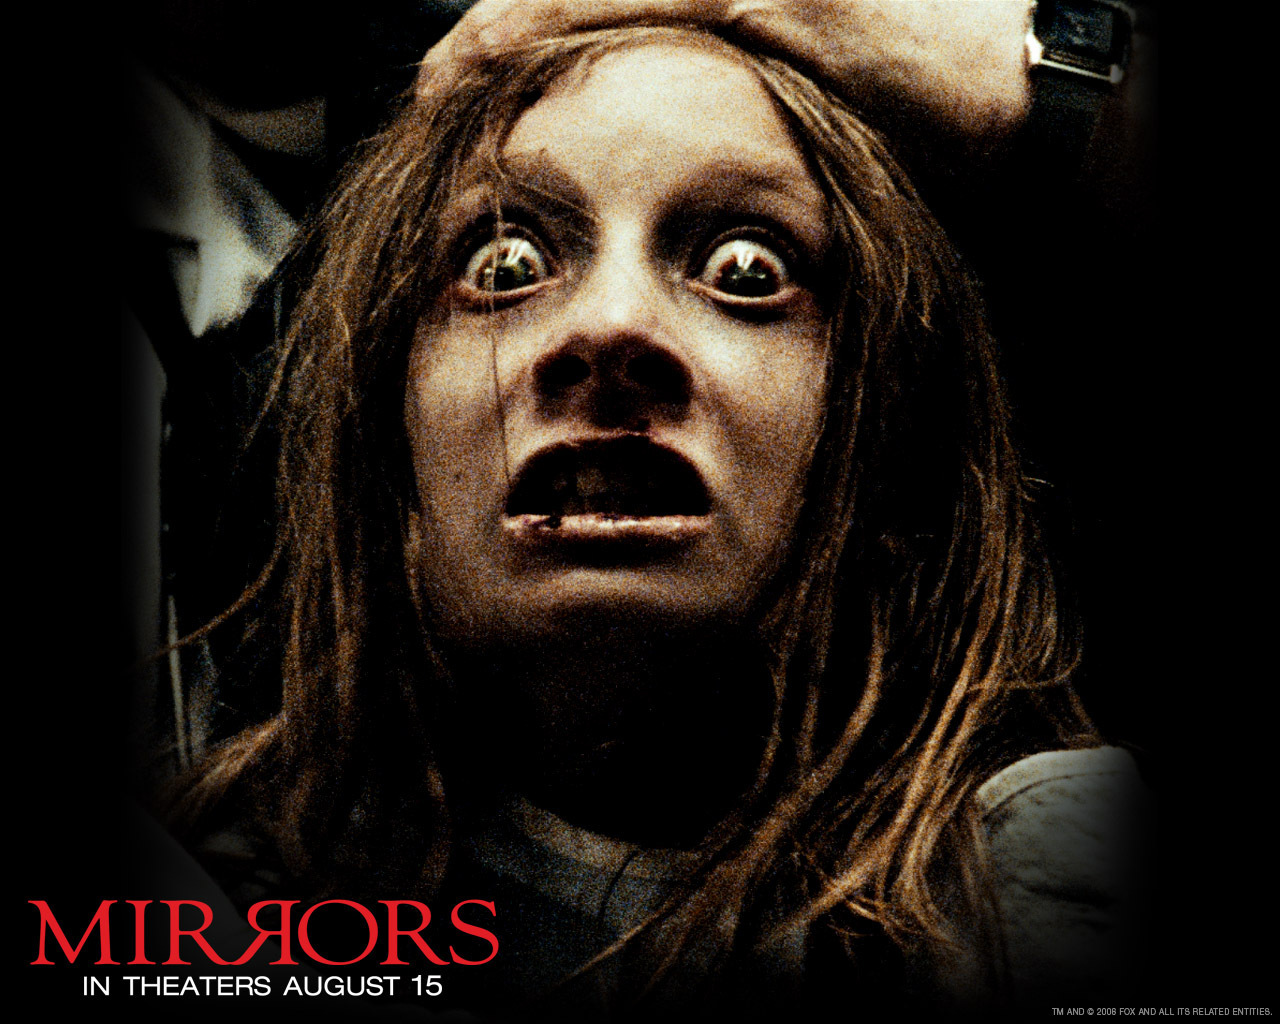 Mirrors horror movies wallpaper 7085484 fanpop for Mirror 1 movie